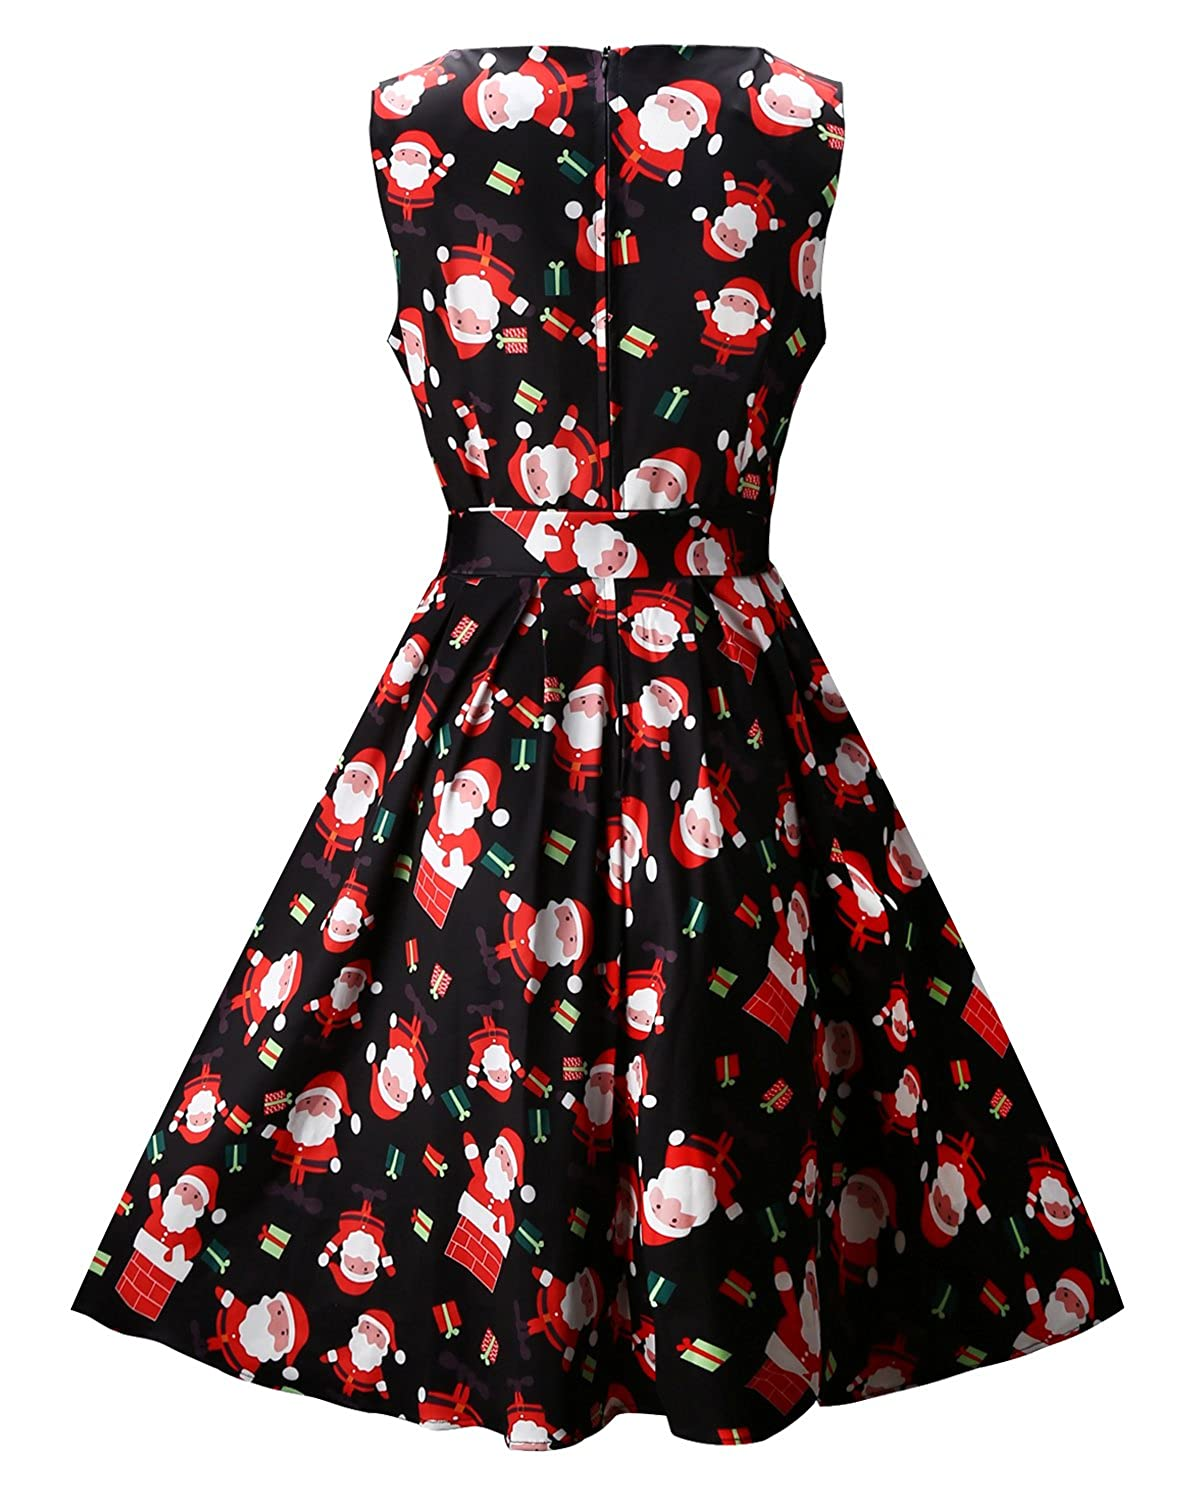 OUGES Women\'s Christmas Gifts Fit and Flare Cocktail Dress at Amazon ...